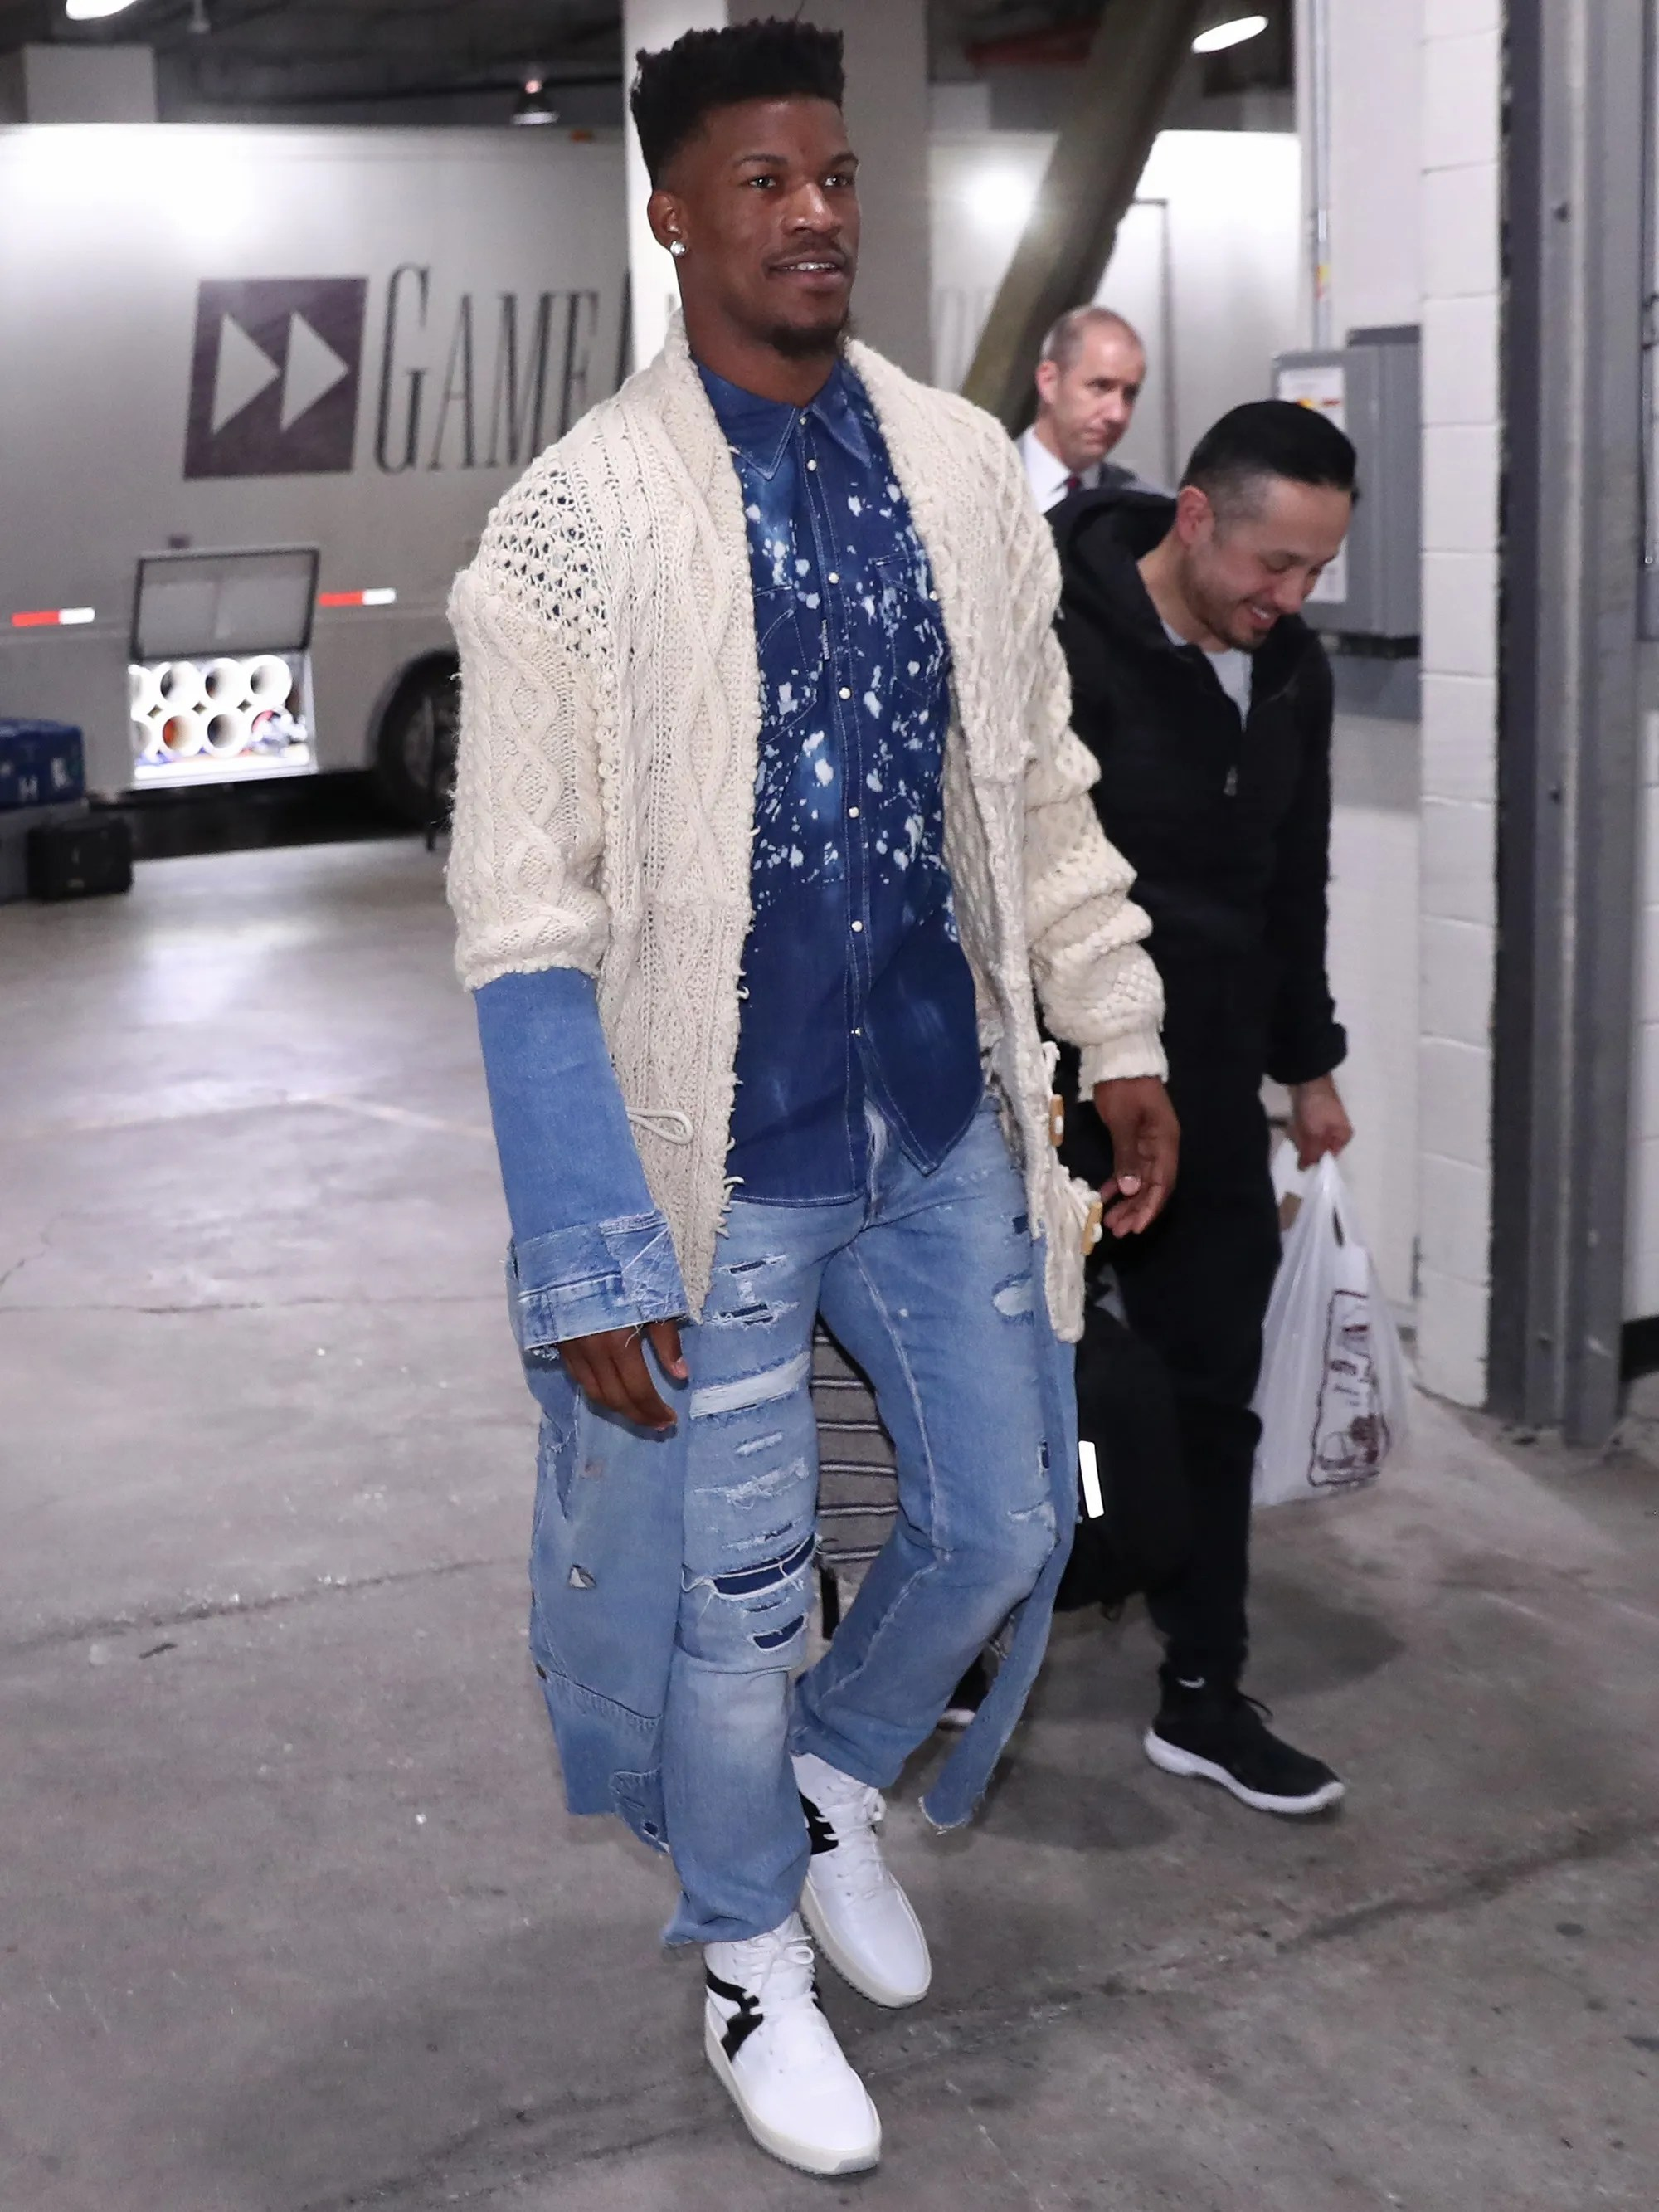 The Best and Craziest PreGame Fits of the 201718 NBA